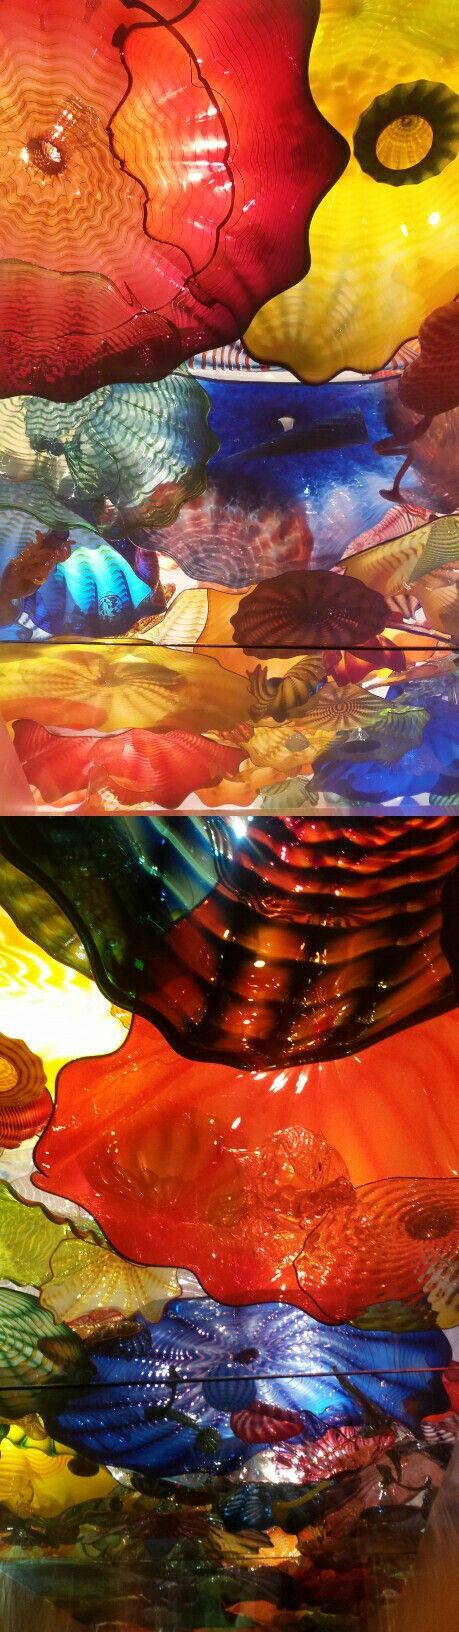 Cool Chihuly Art Glass Ceiling OKC Museum of Art